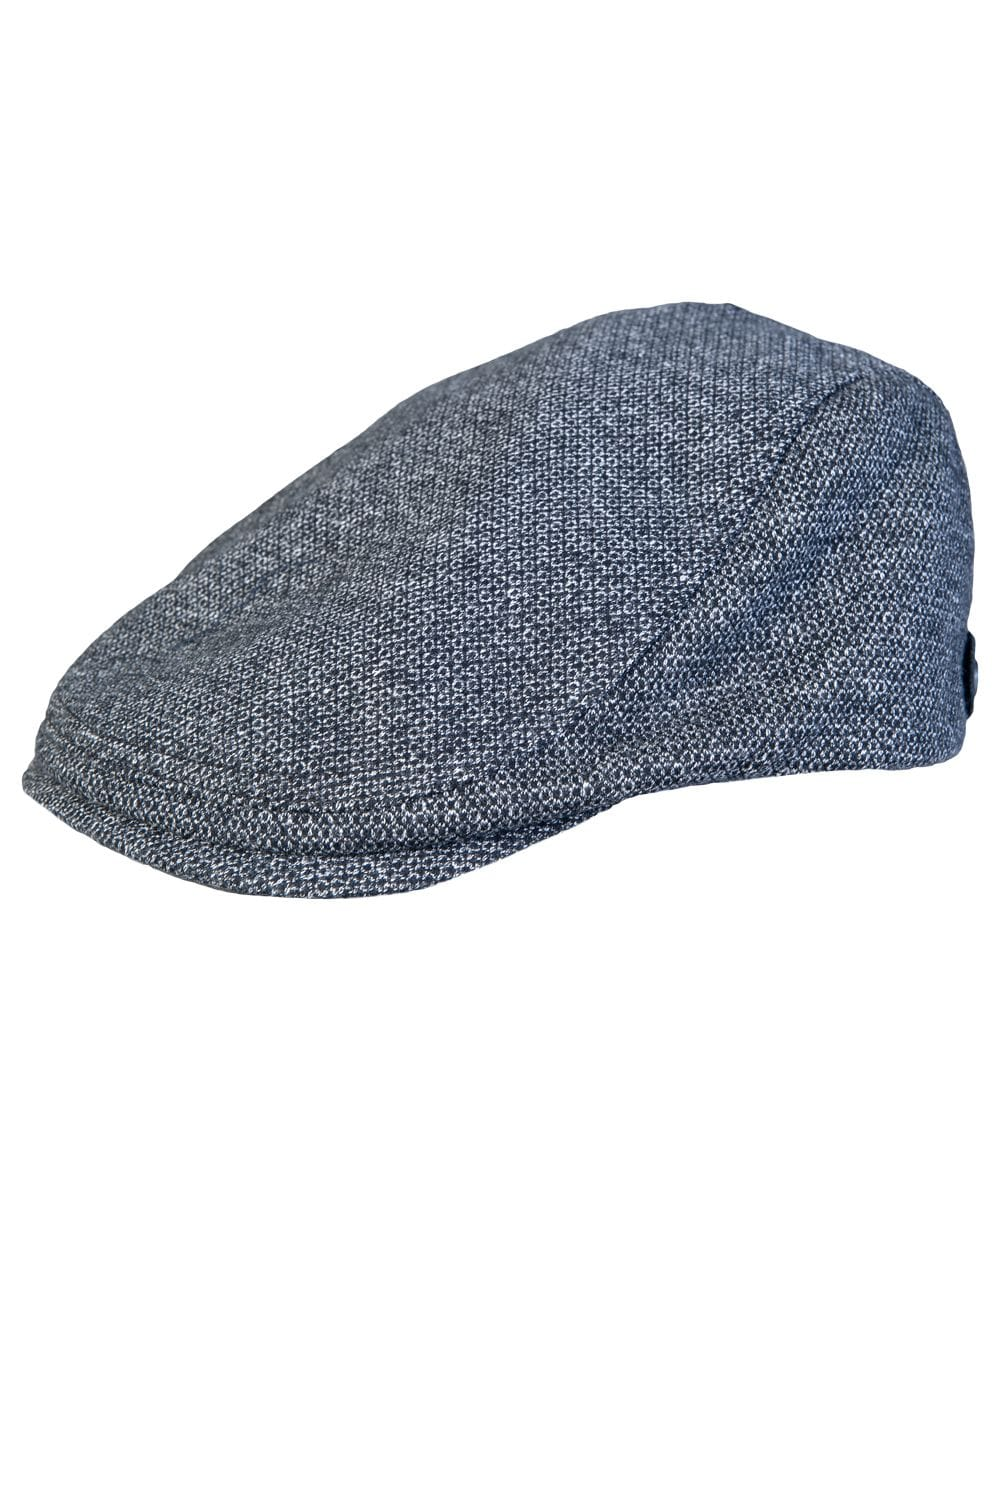 4aefc15b63e Ted Baker Flat Cap MXH CRUMBAL - Accessories from Sage Clothing UK